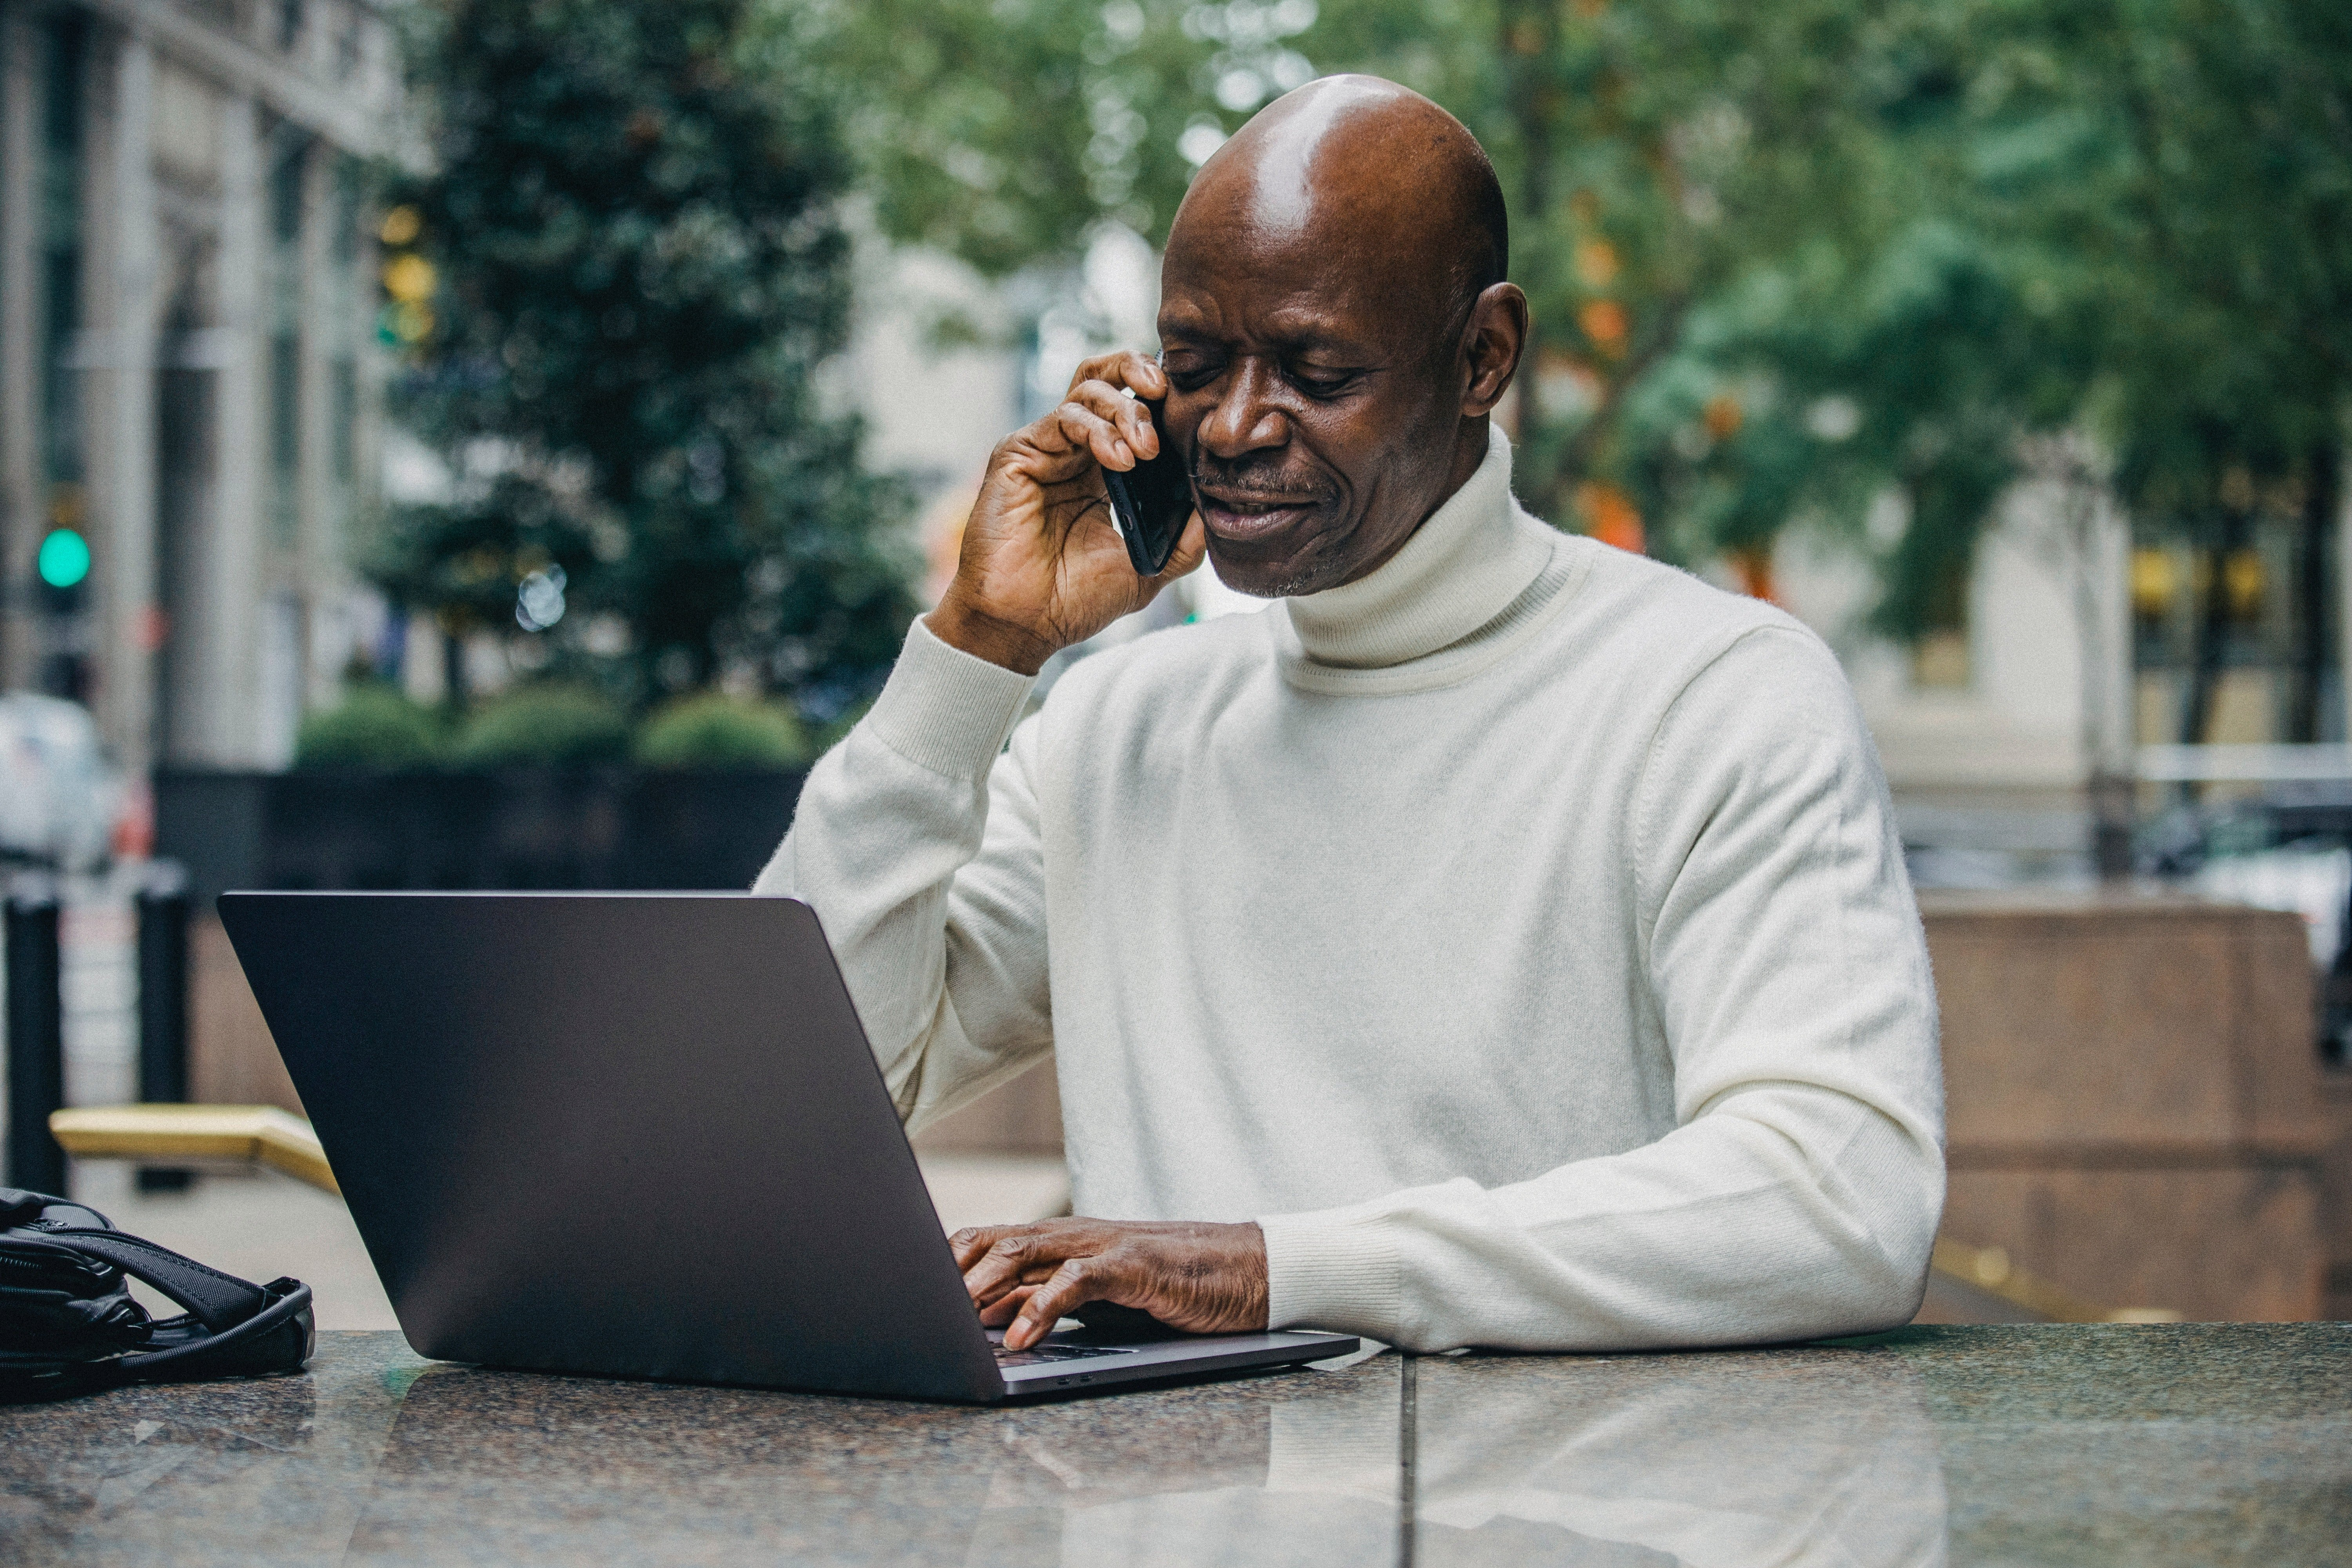 Man talking on phone in front of his laptop   Photo: Pexels